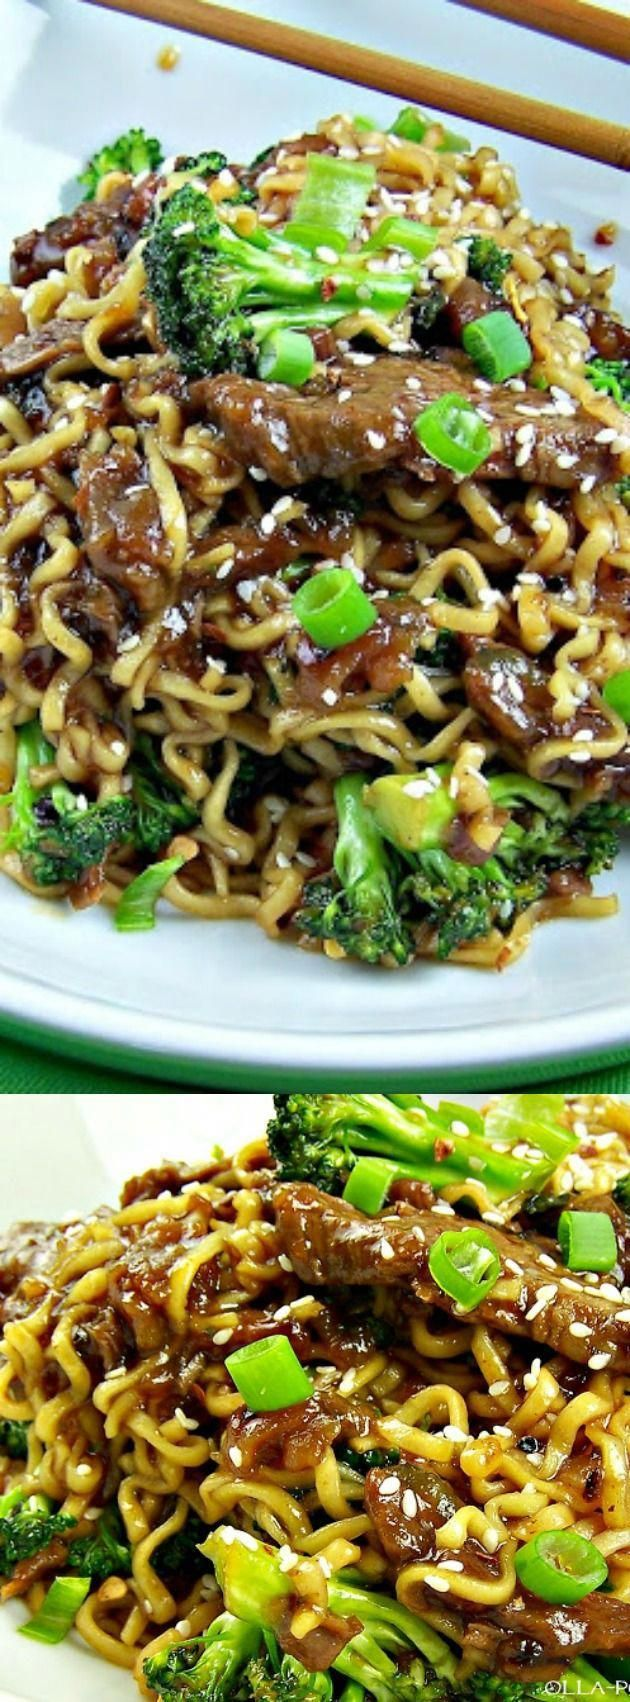 Easy One-Skillet Beef and Broccoli Ramen - The Best Blog Recipes #marinadeforbeef